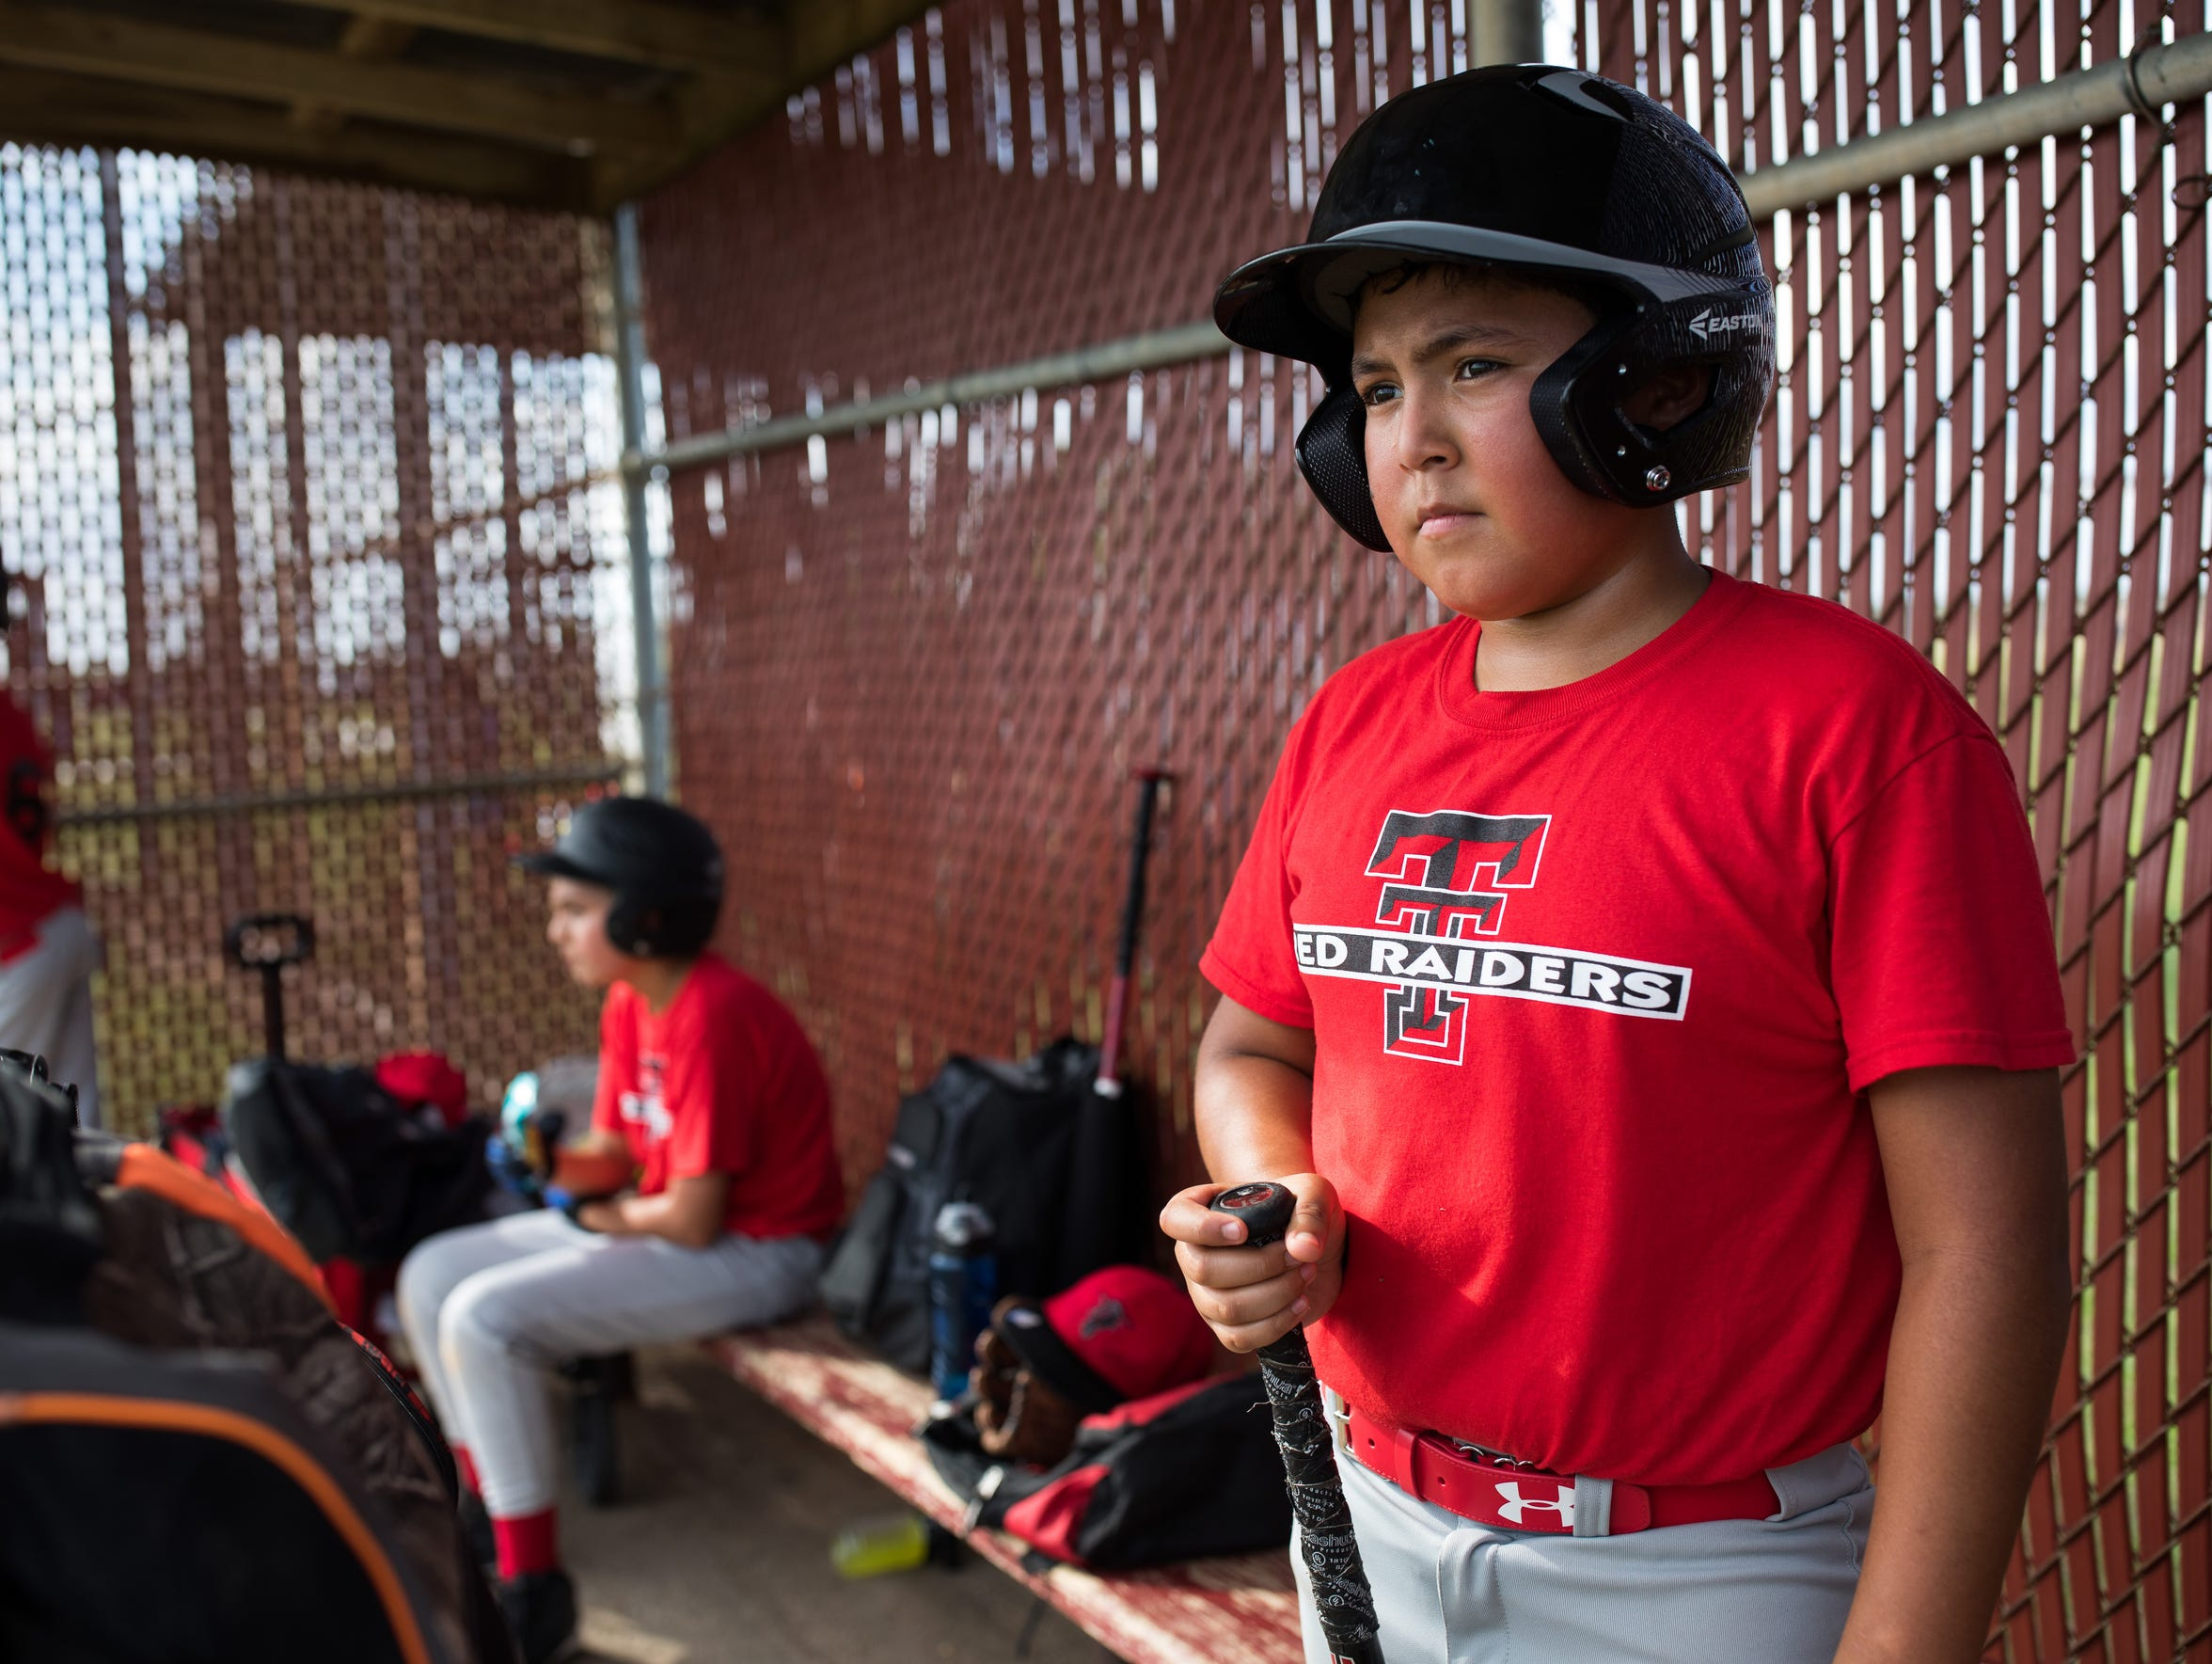 Monica Rocha's youngest son 10-year-old Hector Palacios